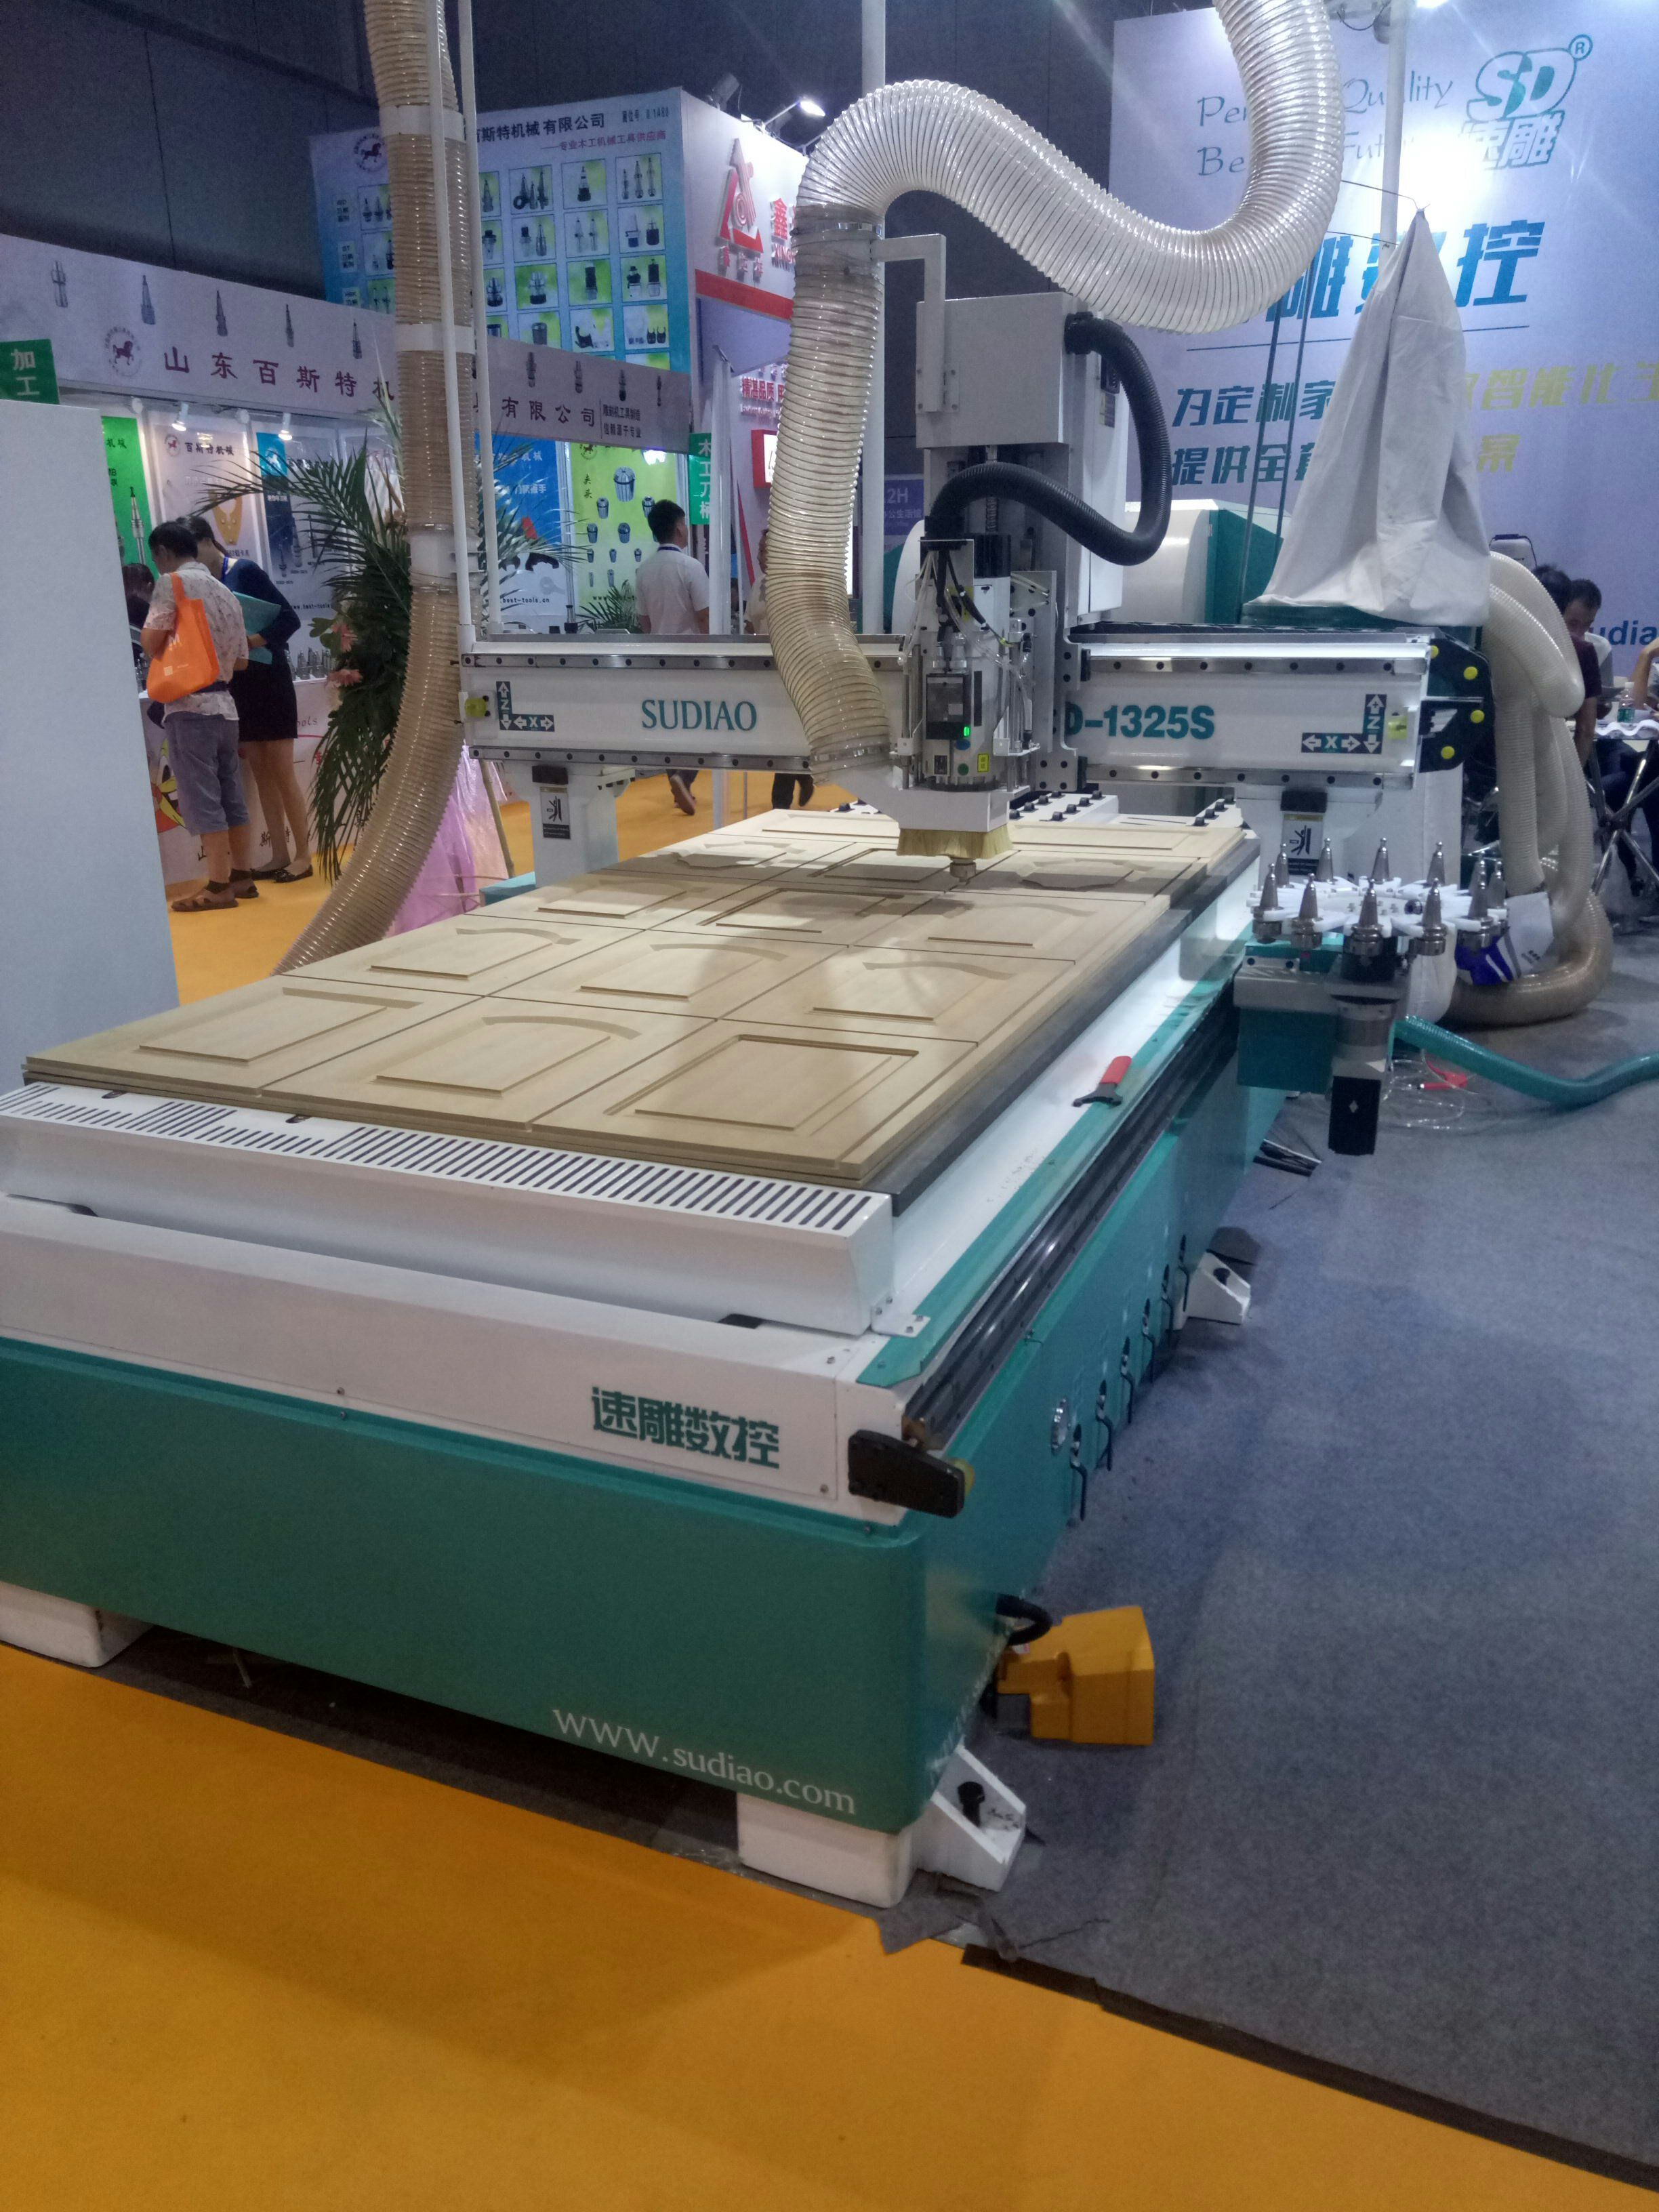 Cncrouter sell cnc router machine with automatic tool